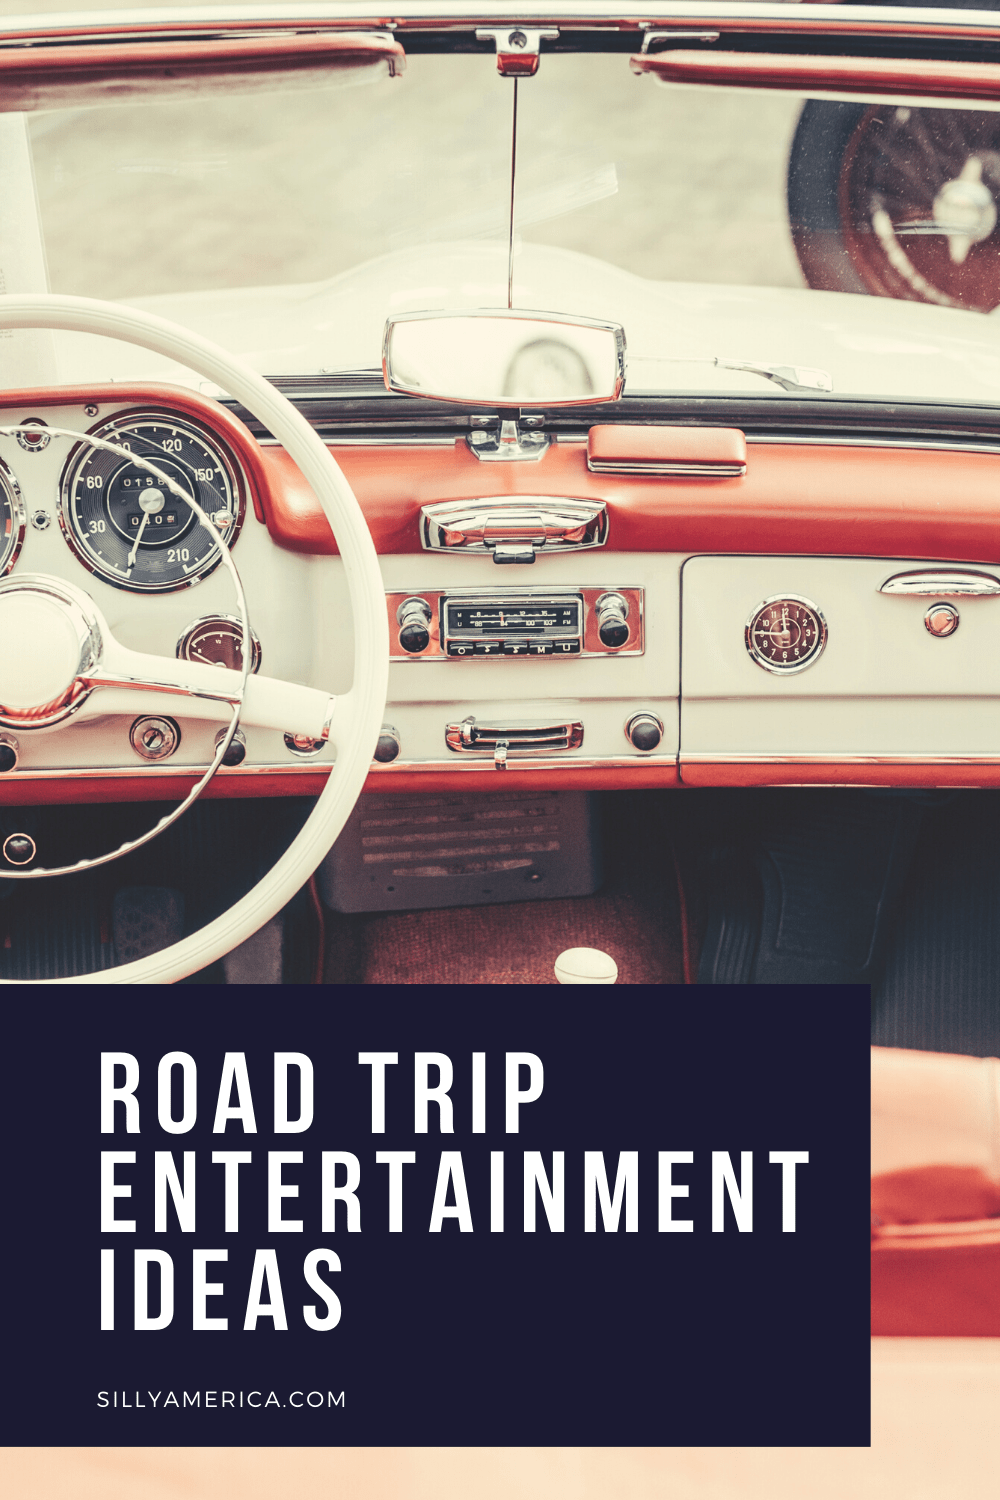 Road trip entertainment ideas to keep your car passengers having fun from home to destination. Read on for some ideas for what to do in the car for kids or adults and things to bring on a road trip for entertainment.  #RoadTrip #RoadTripPlanning #RoadTripGames #RoadTripEntertainment